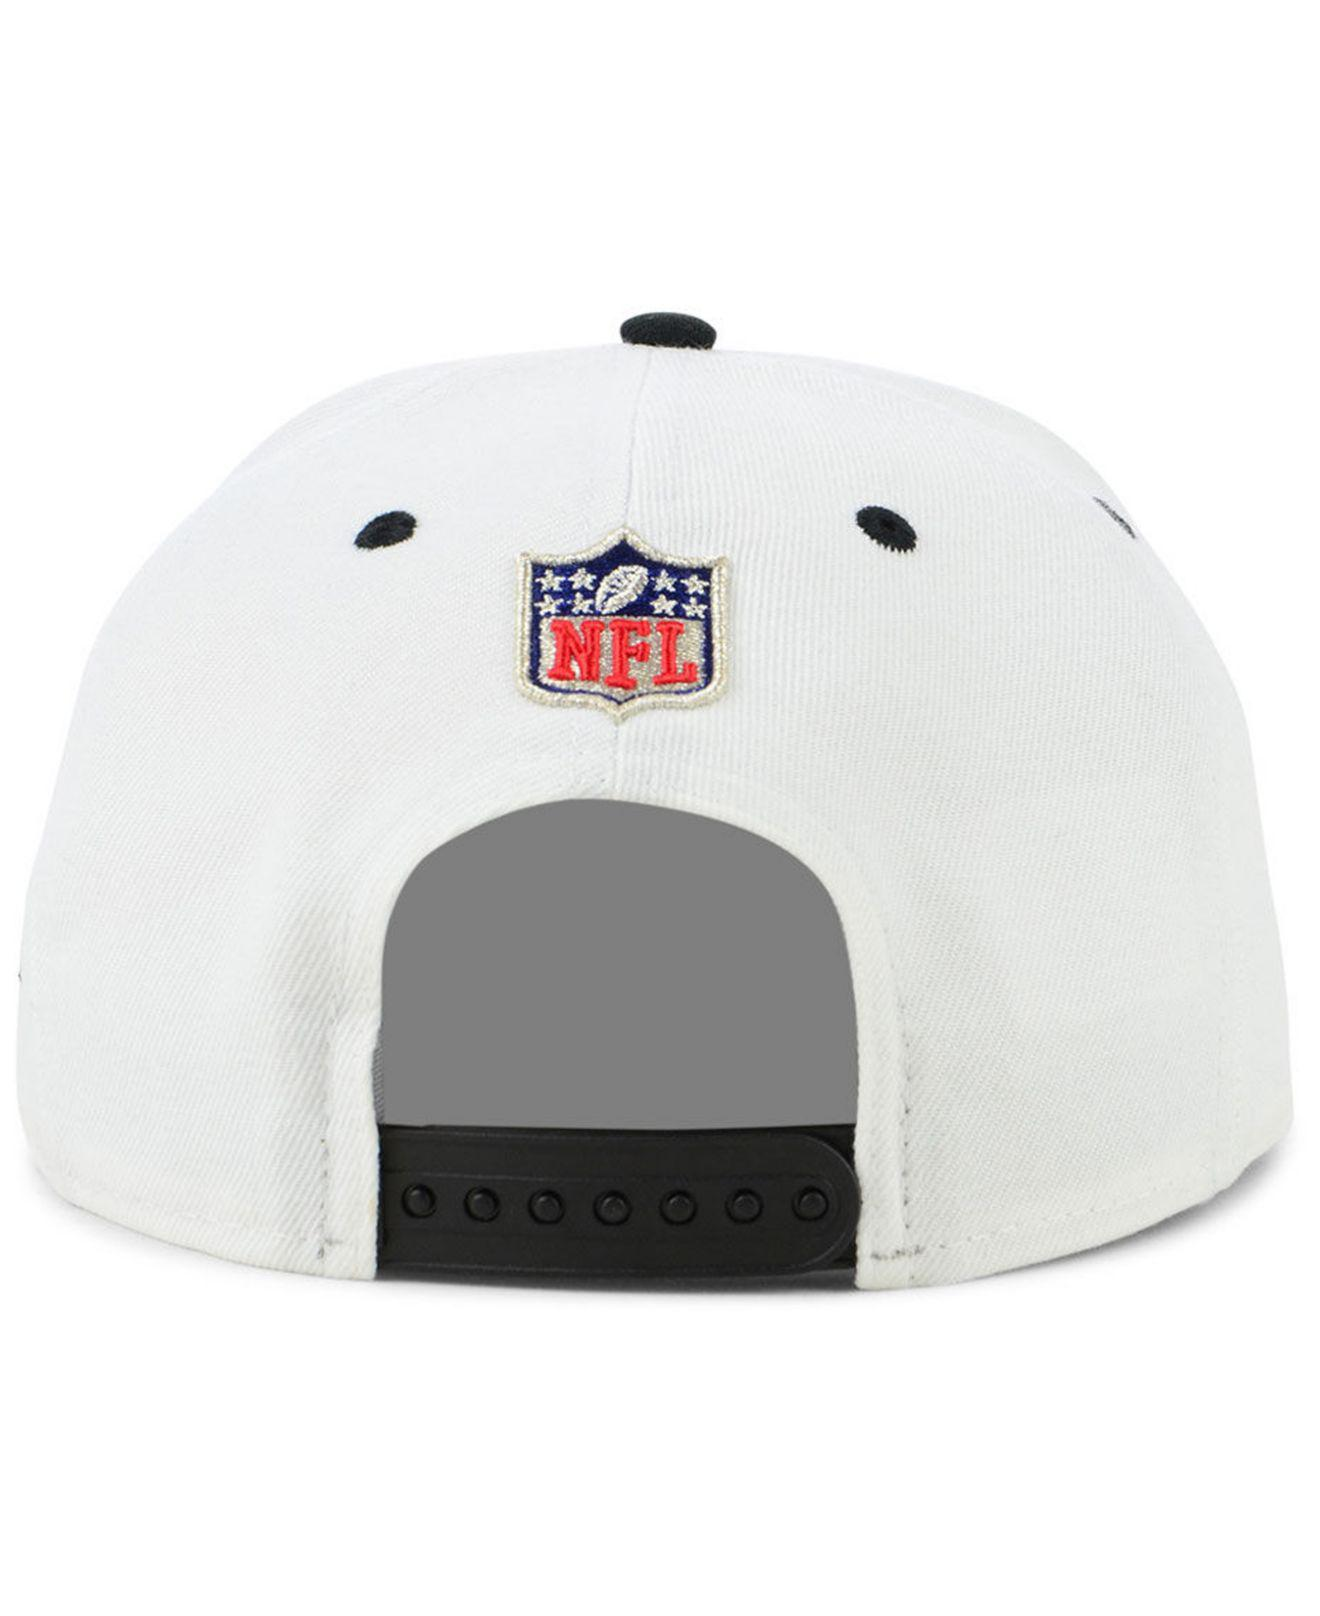 6ec19f411 Lyst - KTZ Oakland Raiders Thanksgiving 9fifty Cap in White for Men